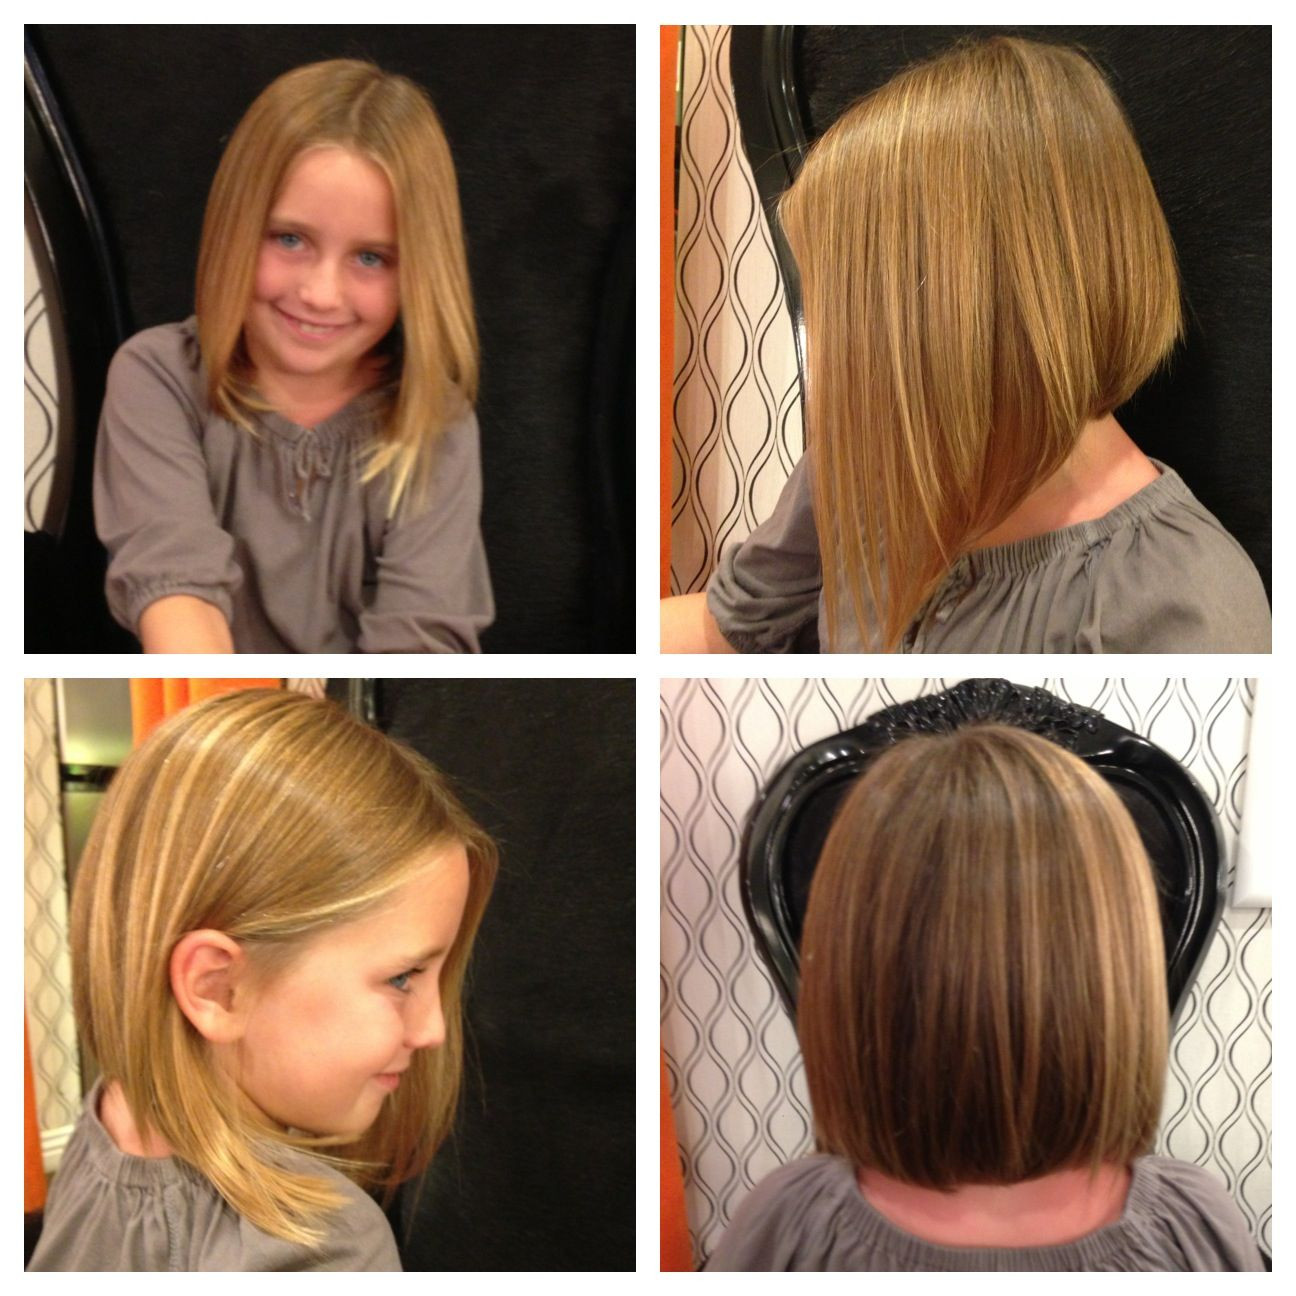 Best ideas about Bob Hairstyles For Kids . Save or Pin Kids haircut By Us Now.